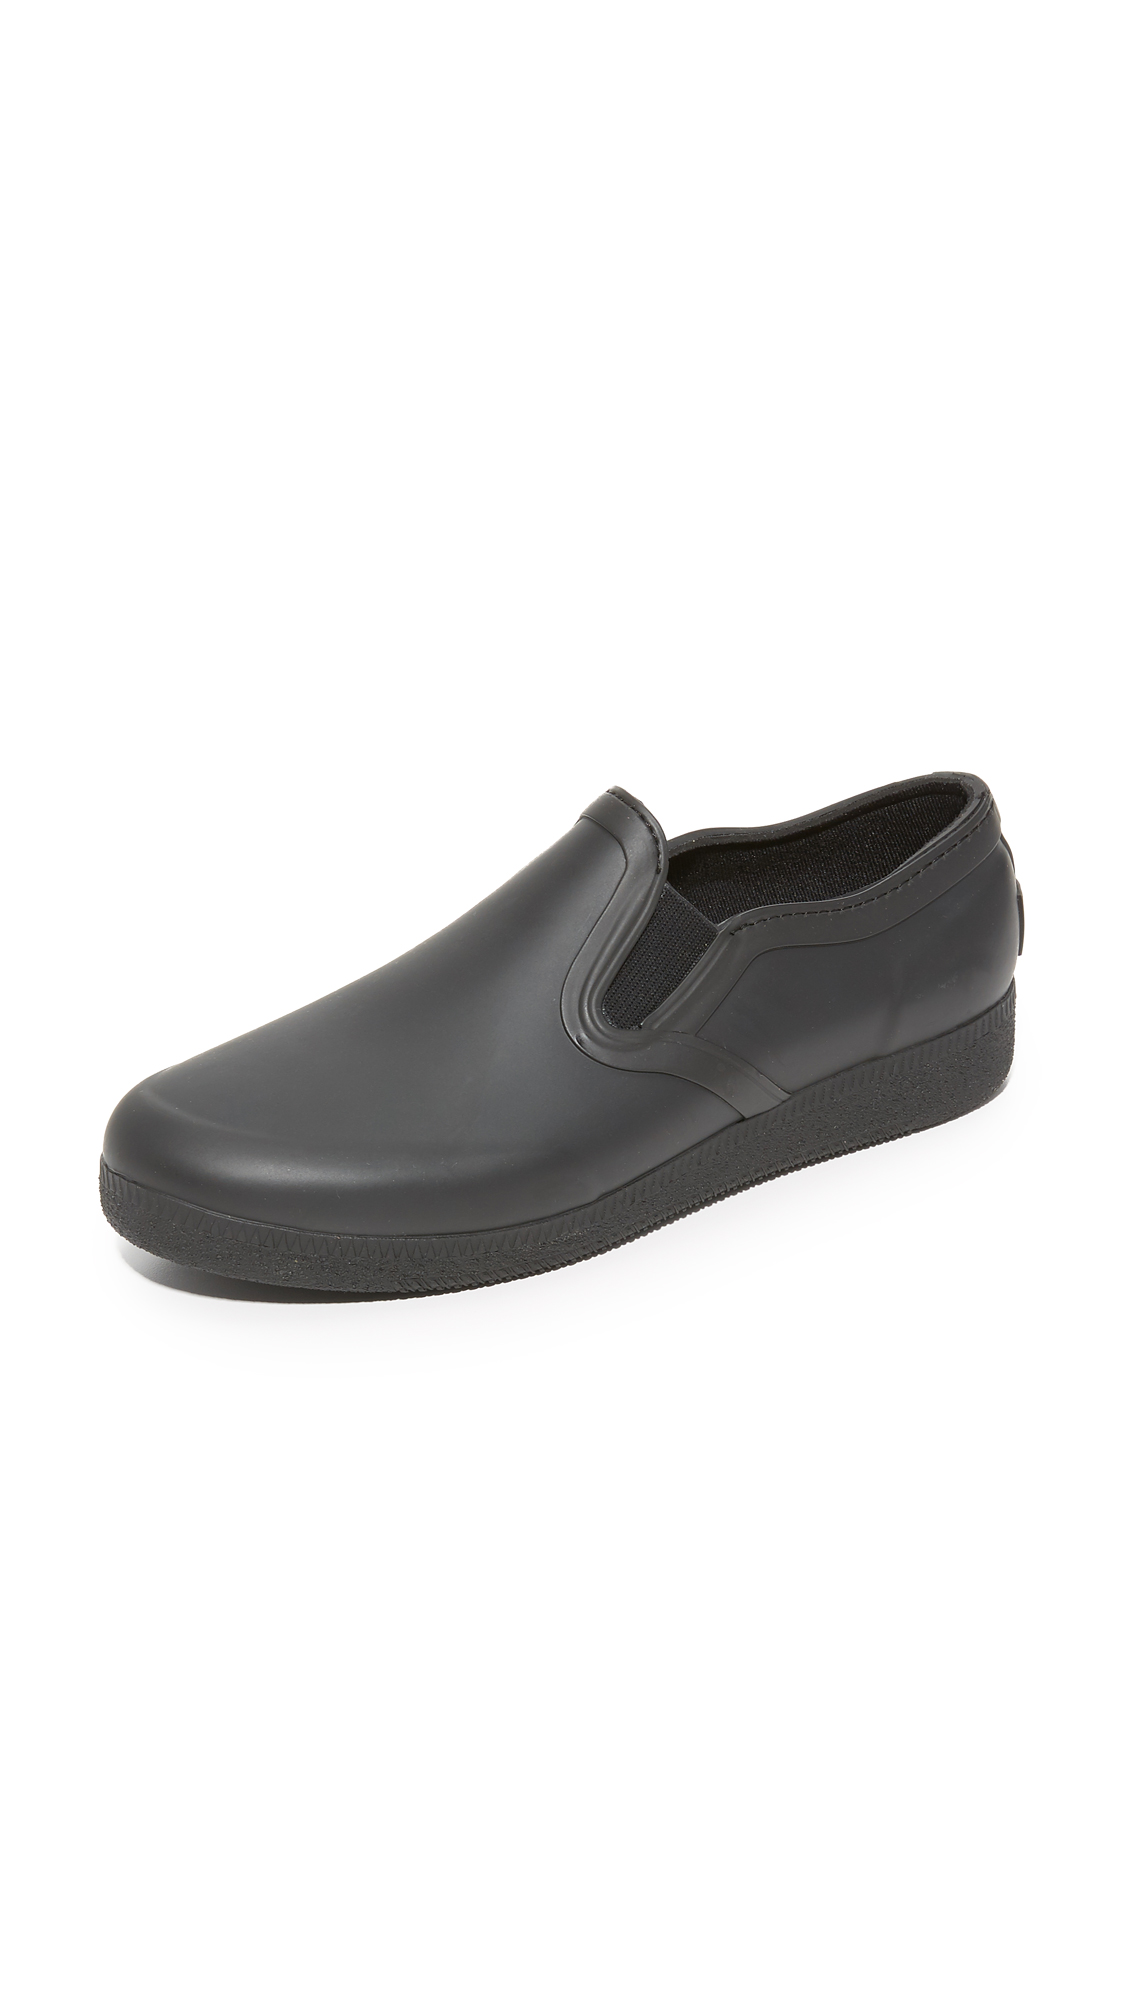 Hunter Boots Original Refined Rubber Slip On Sneakers - Black at Shopbop